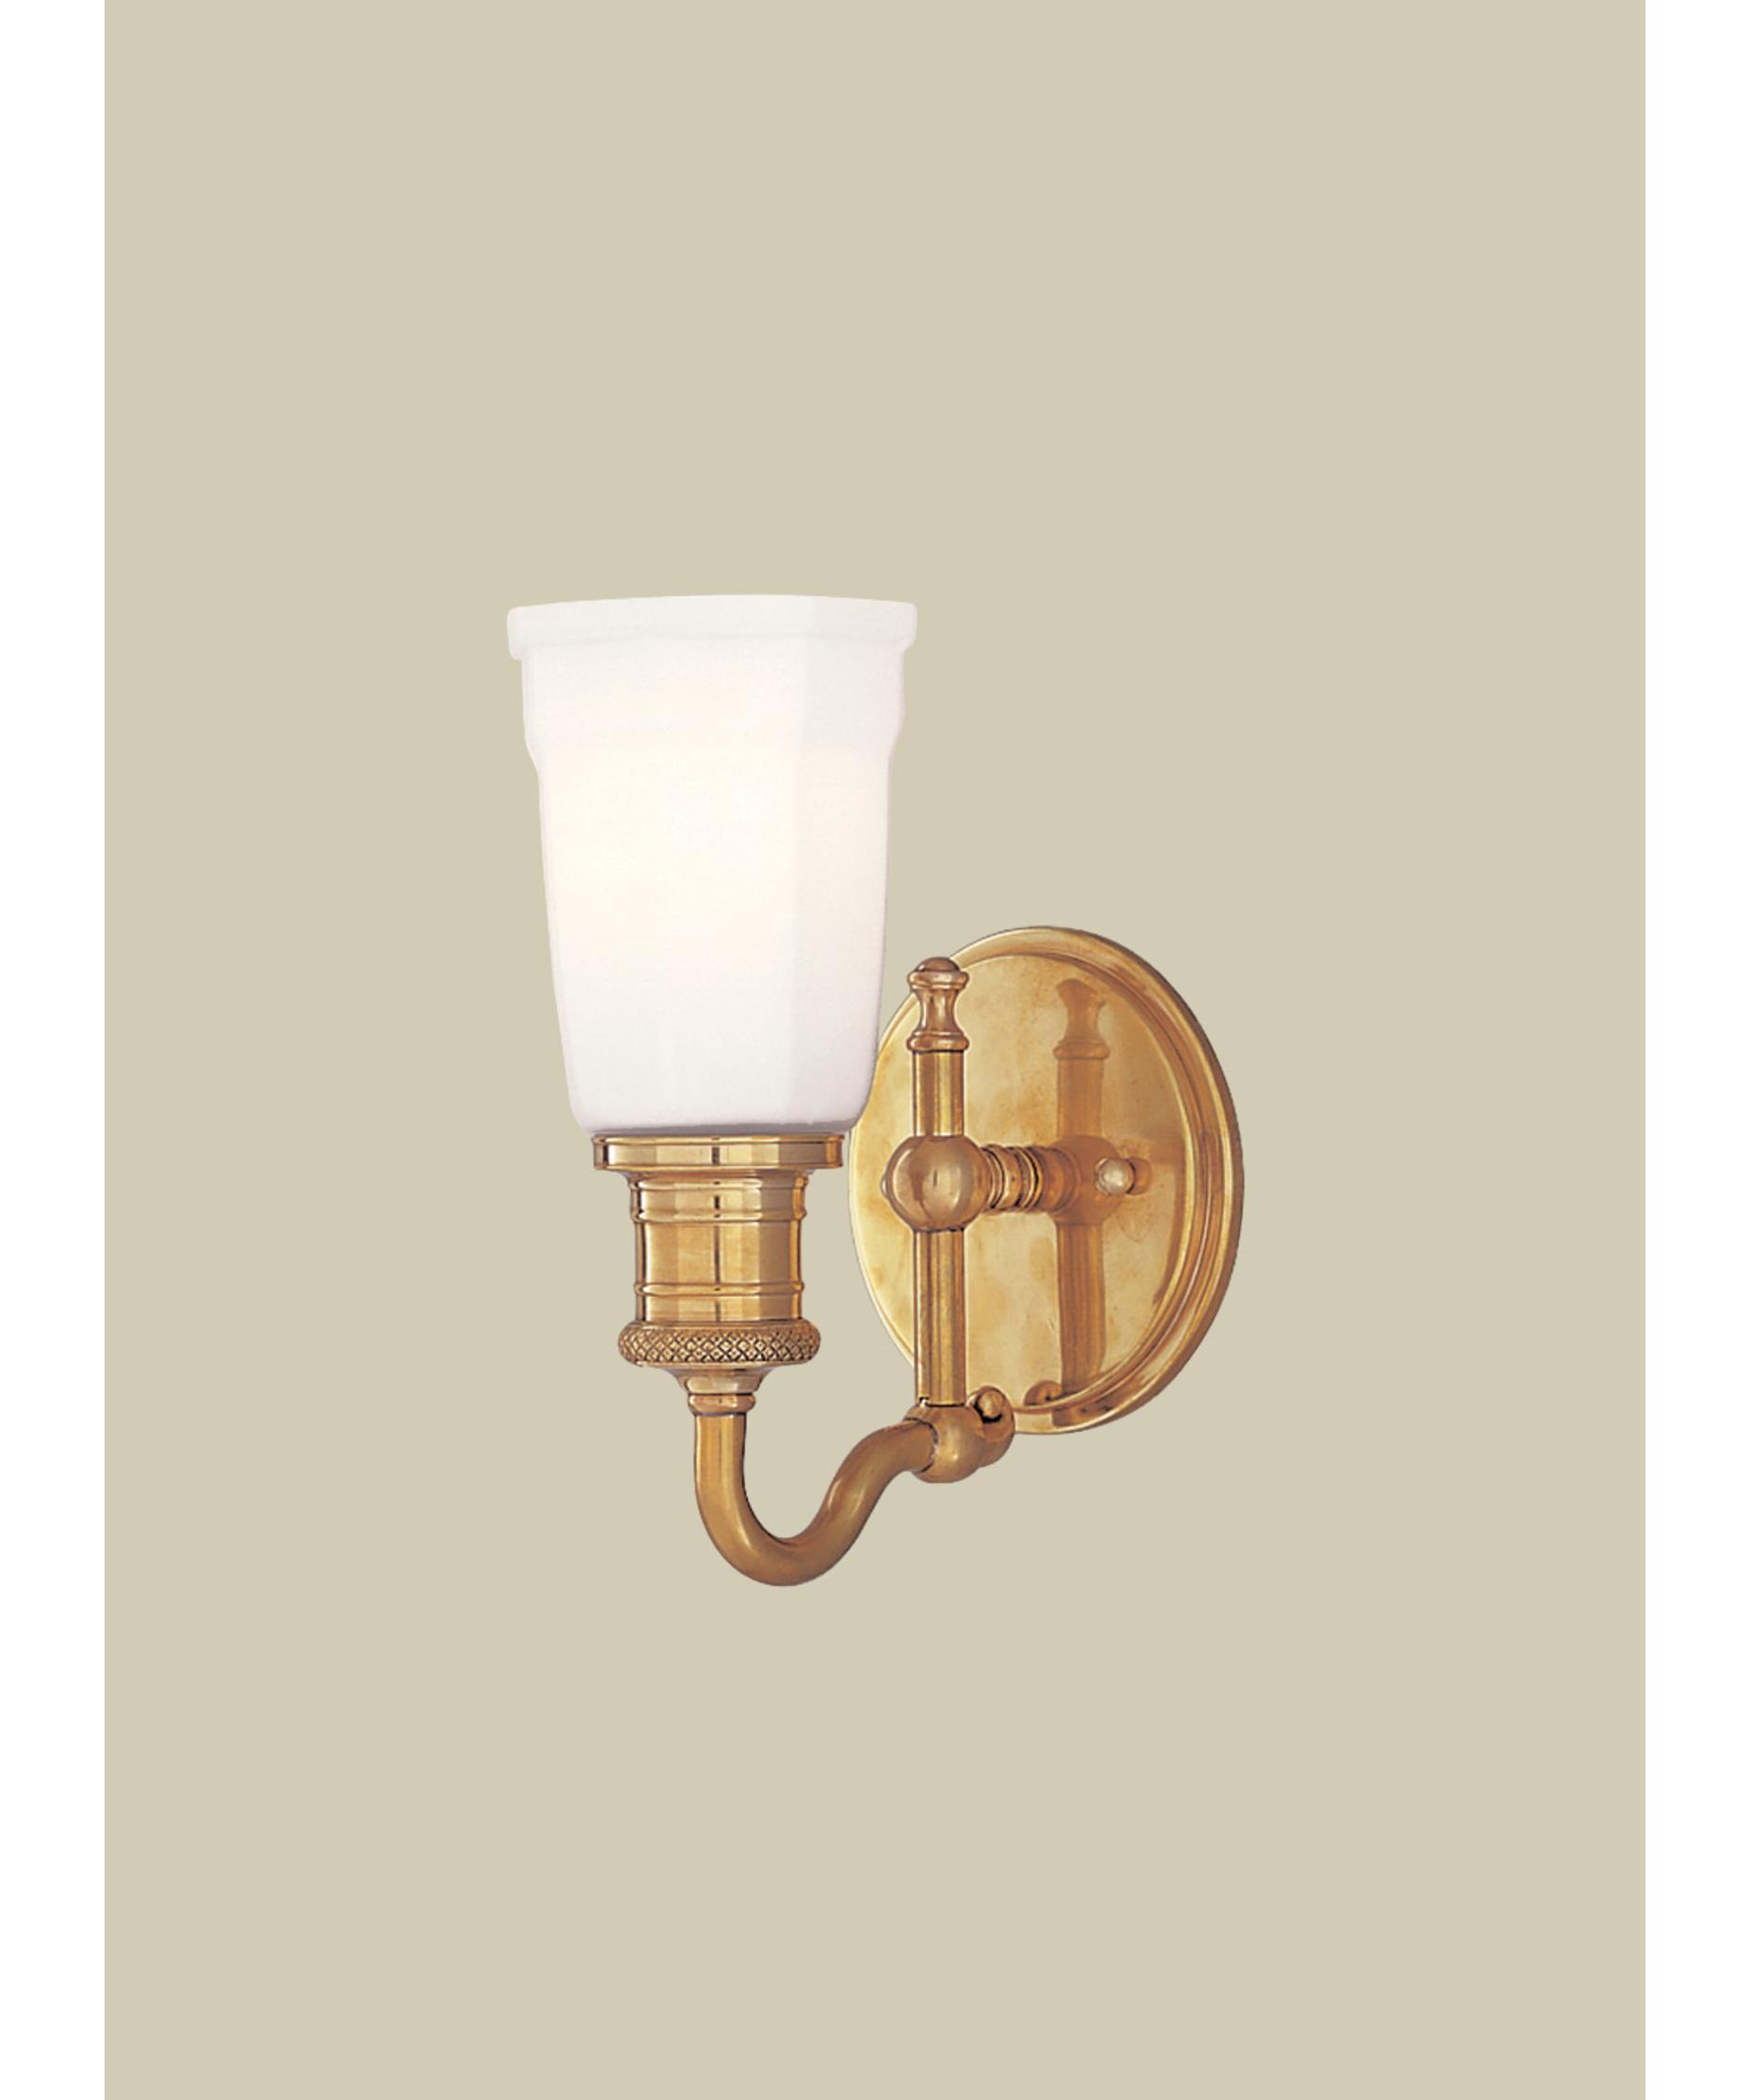 Hudson Valley Lighting Bradford: Hudson Valley 2501 Bradford 5 Inch Wall Sconce